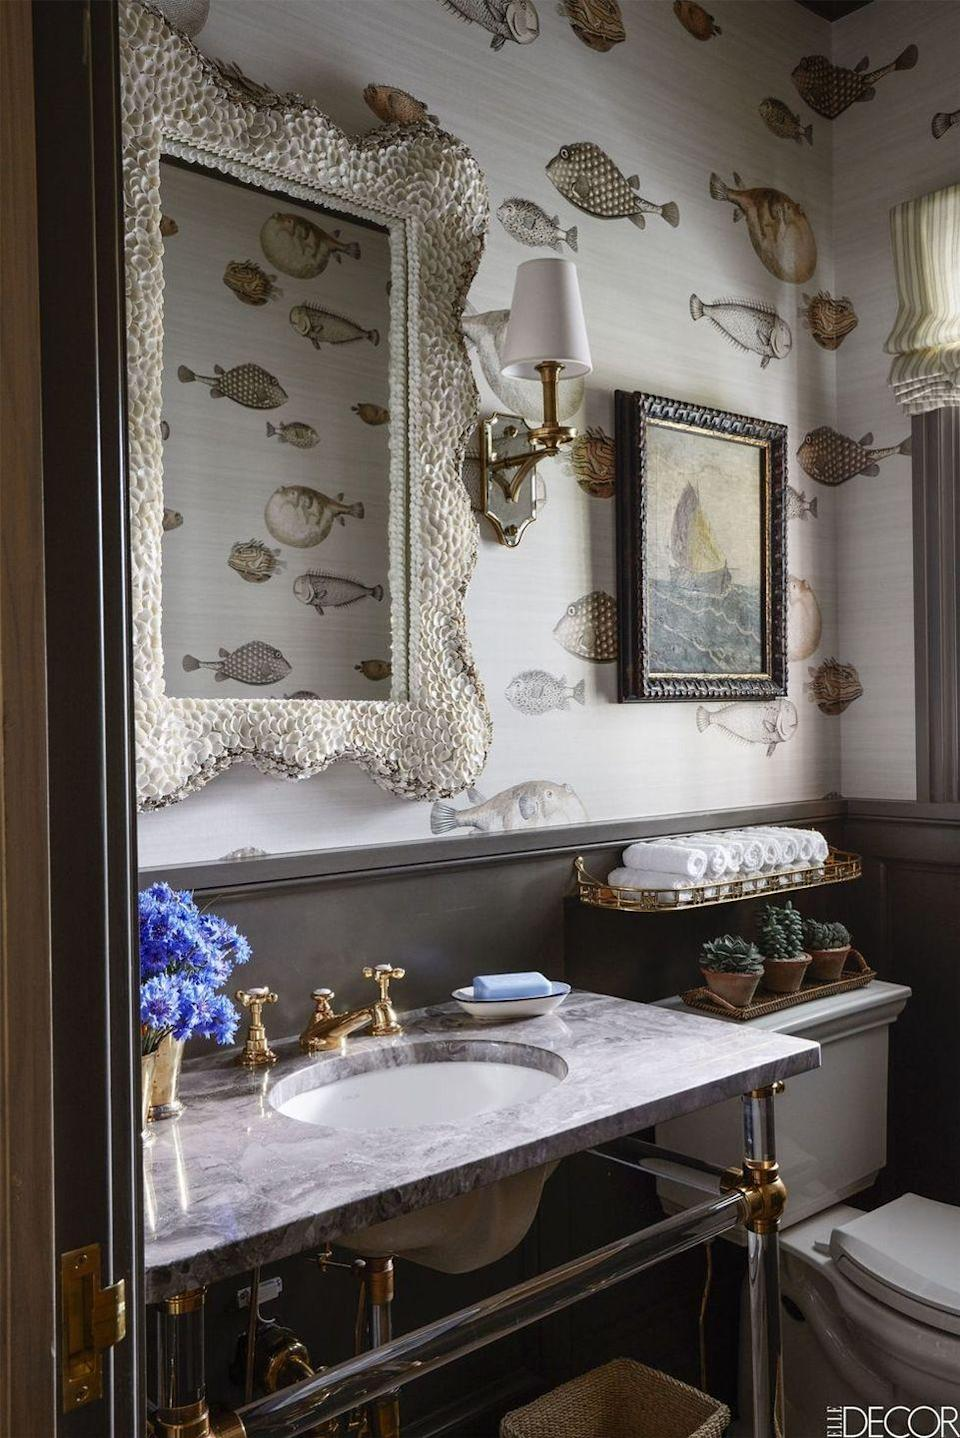 """<p>A <a href=""""https://www.elledecor.com/design-decorate/house-interiors/a8631/most-beautiful-homes-in-east-hampton/"""" rel=""""nofollow noopener"""" target=""""_blank"""" data-ylk=""""slk:beach house in the Hamptons"""" class=""""link rapid-noclick-resp"""">beach house in the Hamptons</a> really leans into the nautical look with fish-printed wallpaper by Cole & Son. The powder room mirror is by Made Goods and the sconce is by Visual Comfort.</p><p><em>Cole & Son Acquario Wallpaper, $330</em><br><a class=""""link rapid-noclick-resp"""" href=""""https://www.mahoneswallpapershop.com/product/9710030-acquario-pal-bl-mlt-cole-and-son?gclid=CjwKCAjw8NfrBRA7EiwAfiVJpZt8JNdQZzDYmiS7TsLyusdqXfs5KSEWL6E6PvZUAzAeOyiDzRXDcRoCNKwQAvD_BwE"""" rel=""""nofollow noopener"""" target=""""_blank"""" data-ylk=""""slk:Shop the Look"""">Shop the Look</a></p>"""